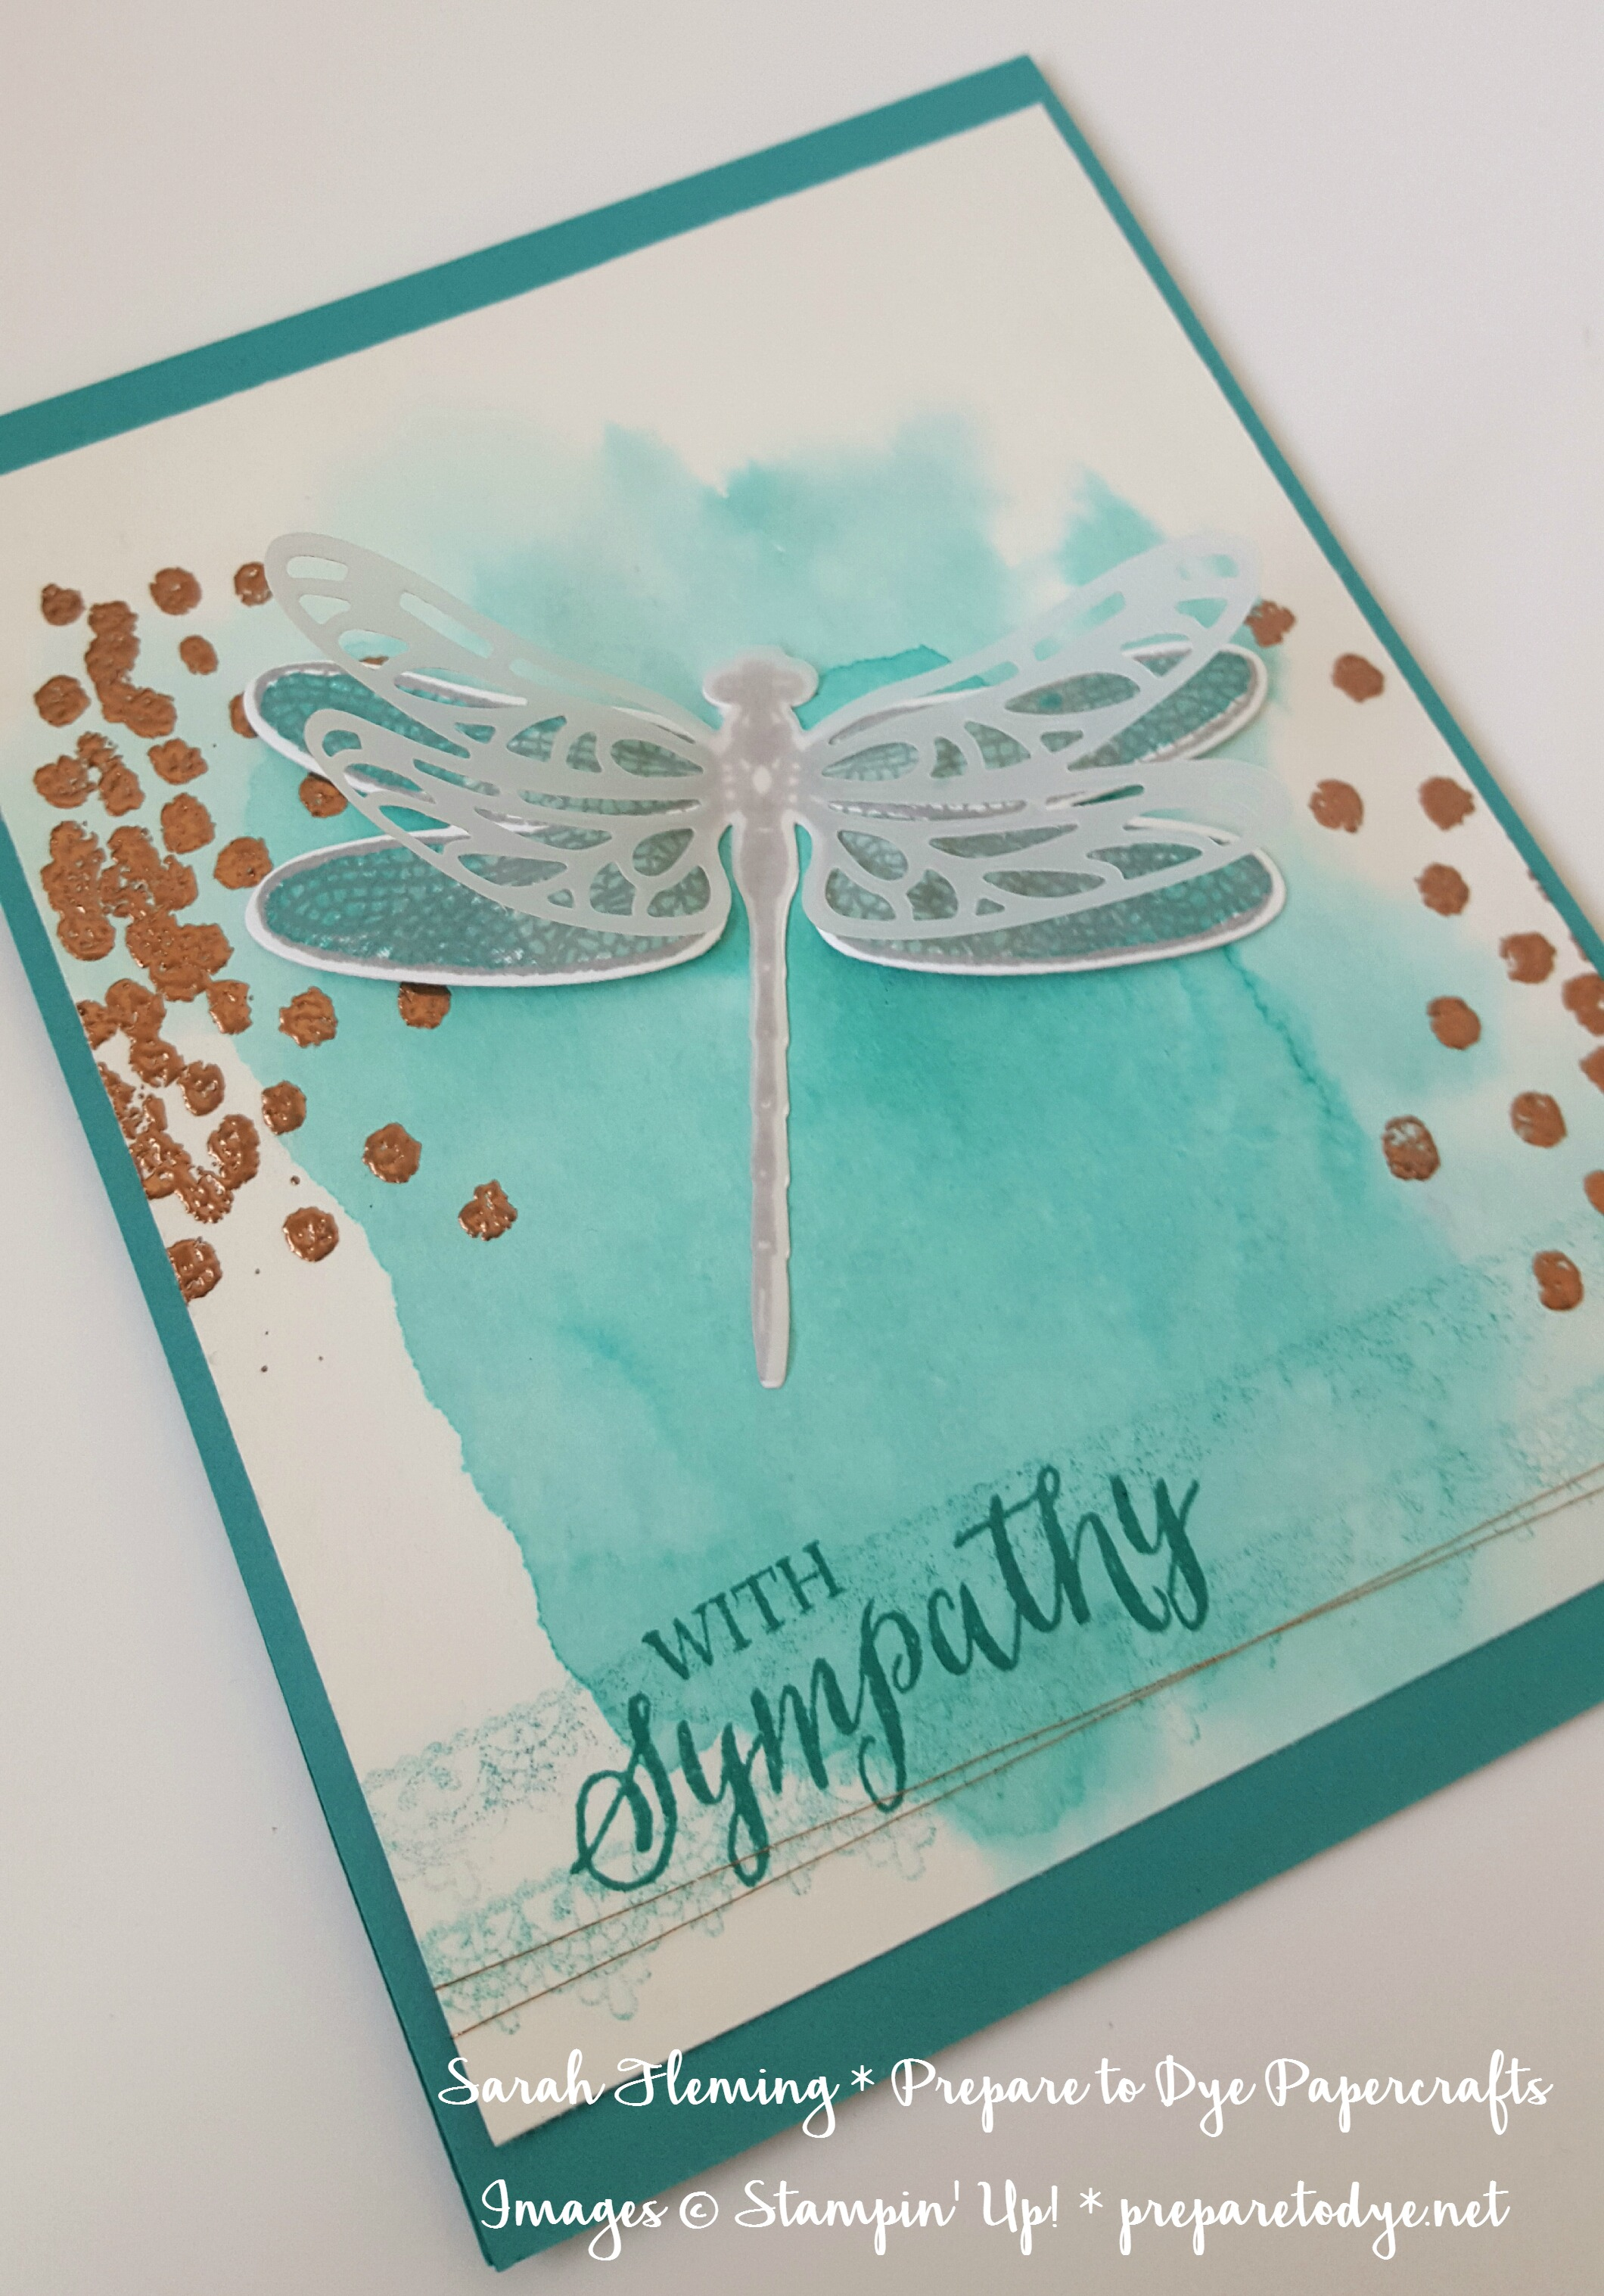 Stampin' Up! Dragonfly Dreams bundle - watercolor background with Rose Wonder and Delicate Details - 2017 Occasions catalog and Sale-A-Bration - Sarah Fleming - Prepare to Dye Papercrafts